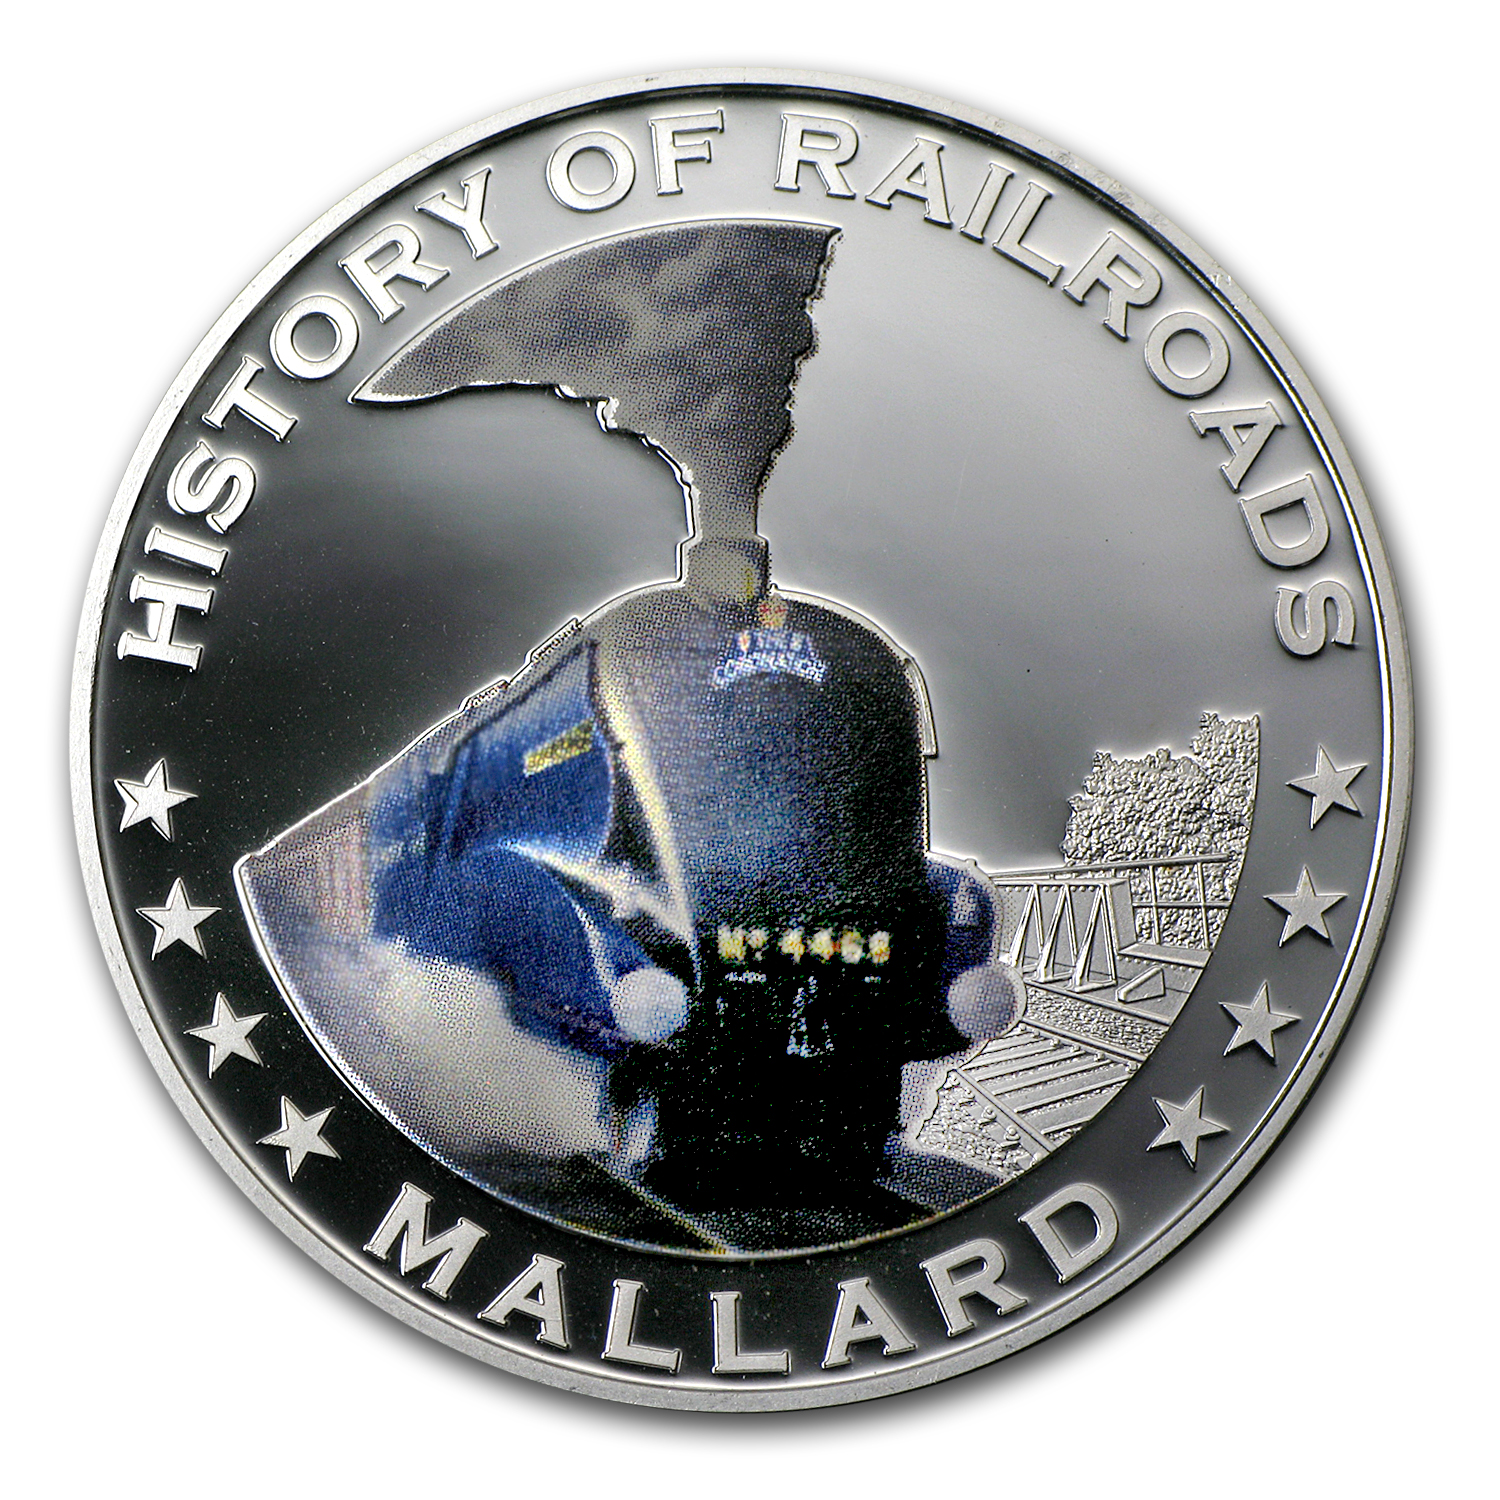 Liberia 2011 Proof Silver 5 Dollars - Mallard Locomotive